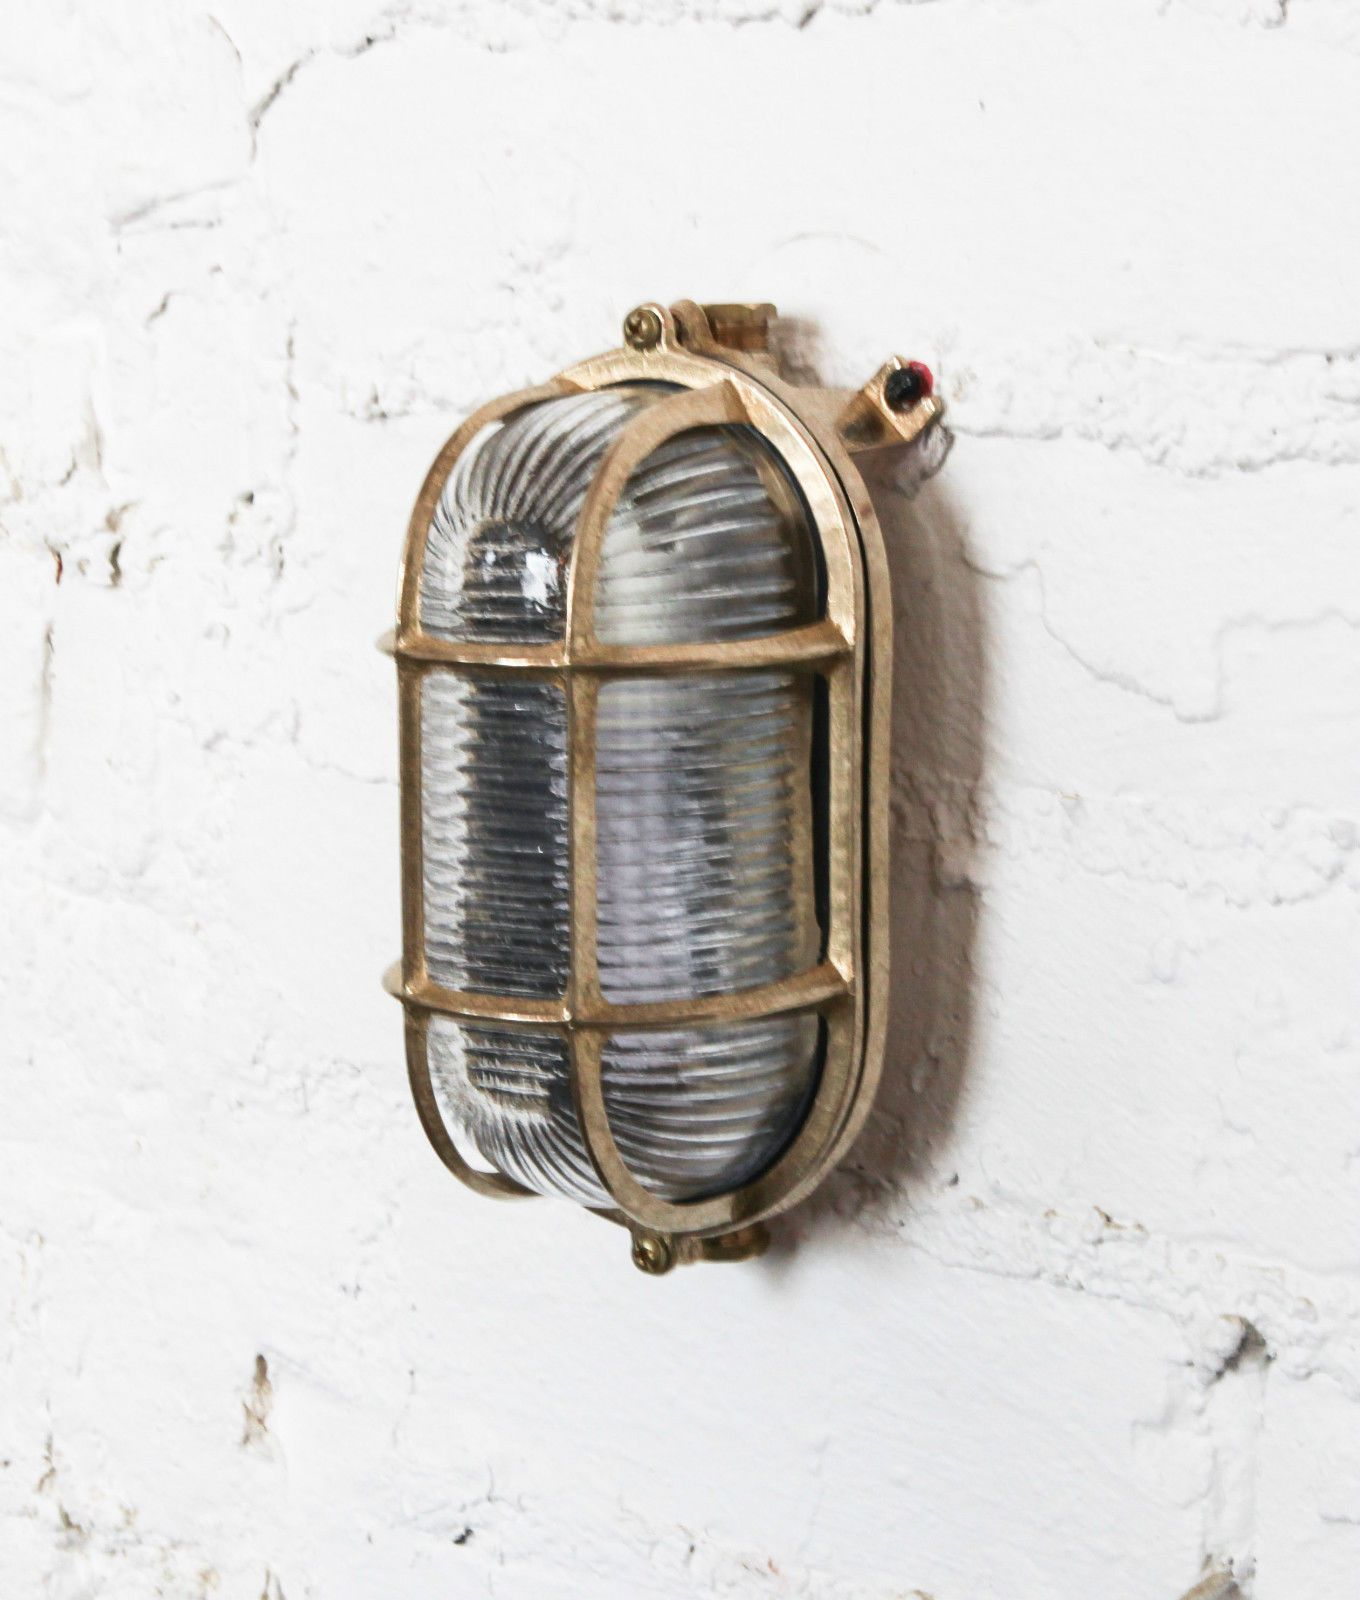 Brass Bulkhead Wall Lights : BULKHEAD LIGHT industrial style wall light polished brass